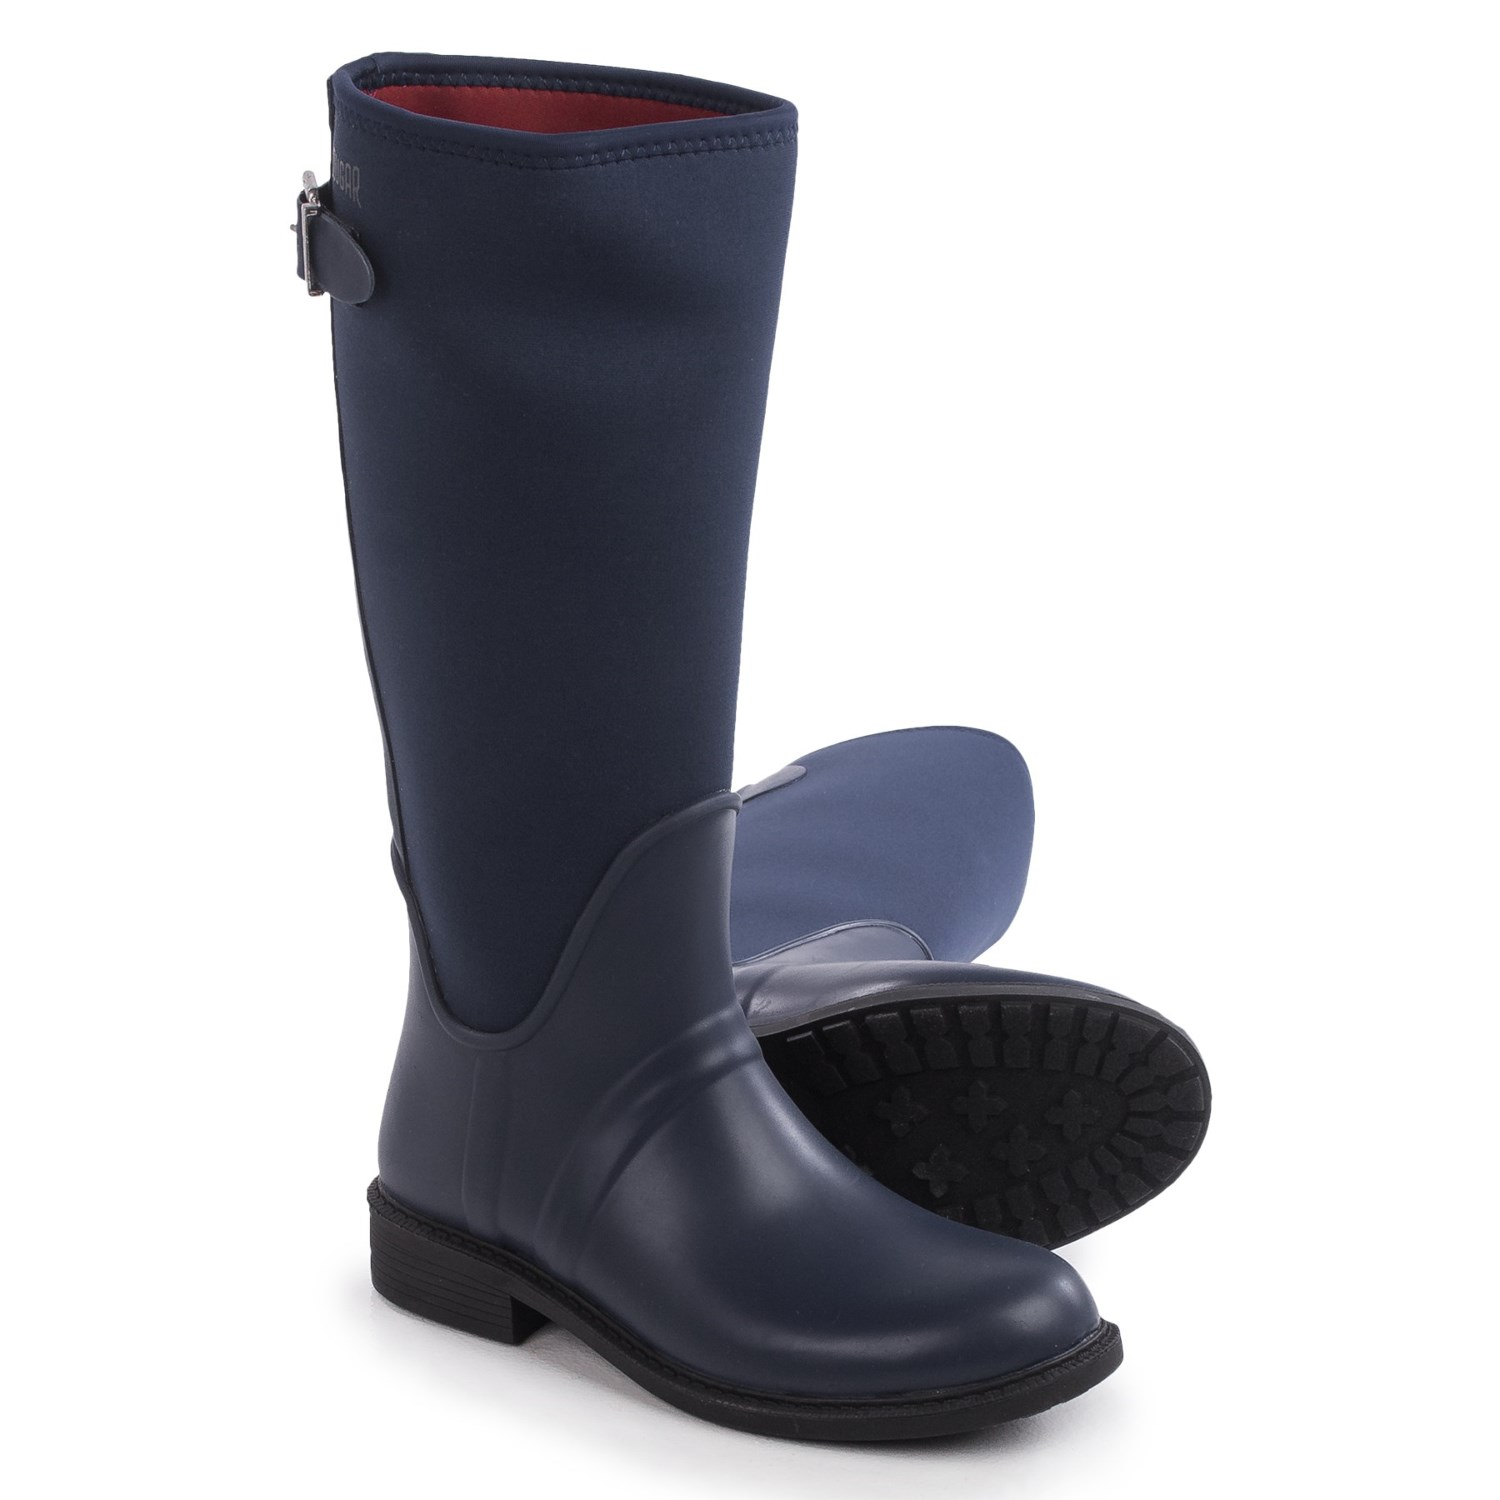 Women&39s Rain Boots on Clearance: Average savings of 71% at Sierra